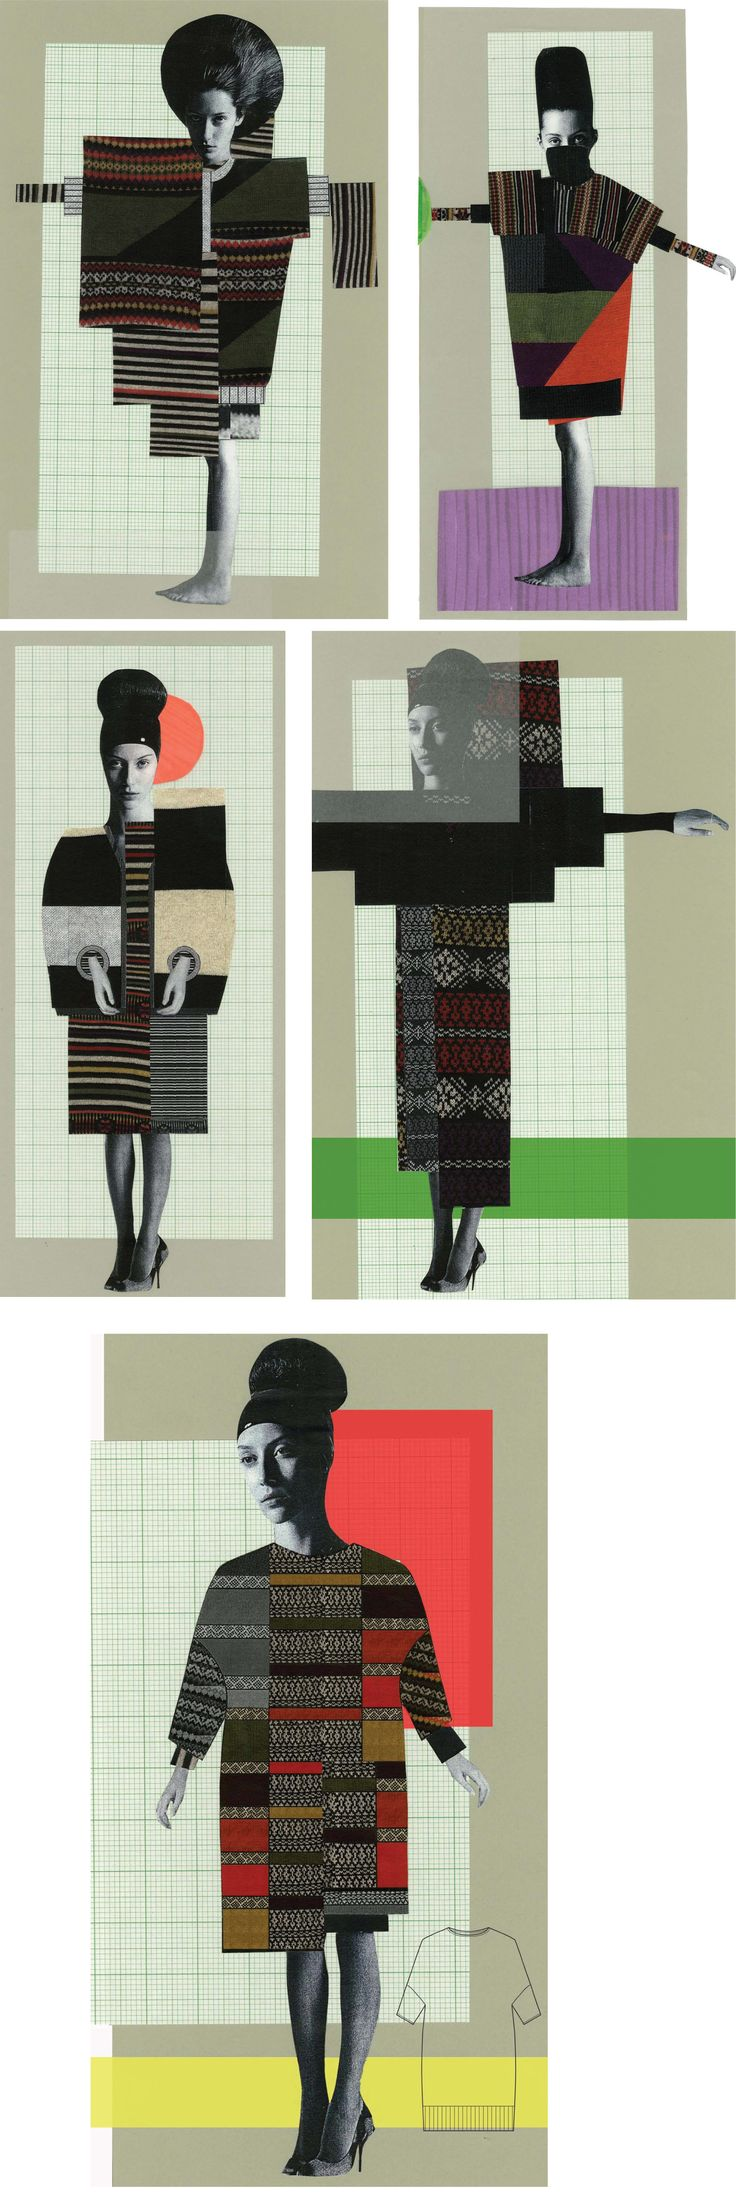 Hannah Louise Buswell, 22. Ravensbourne College of Design & Communication, BA Fashion Graduate 2009.